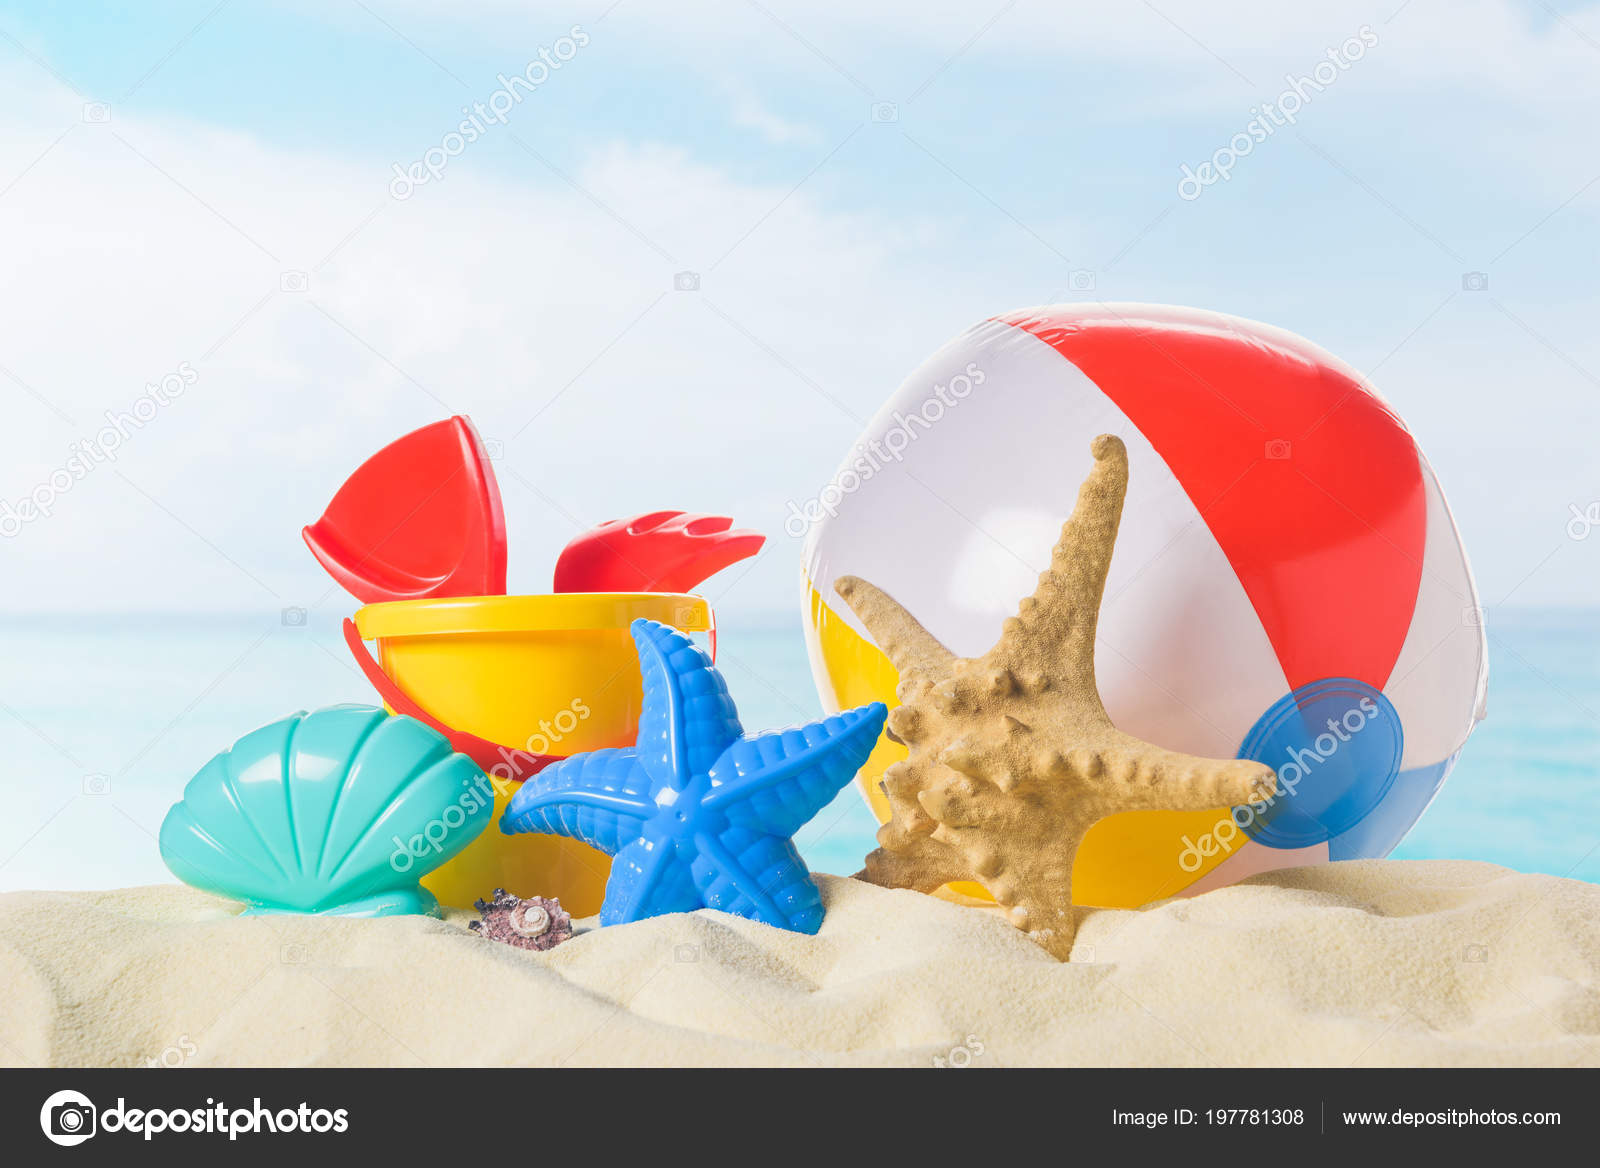 Beach ball in sand Ocean Beach Ball And Toys In Sand On Blue Sky Background Stock Image Depositphotos Beach Ball Toys Sand Blue Sky Background Stock Photo Micenin